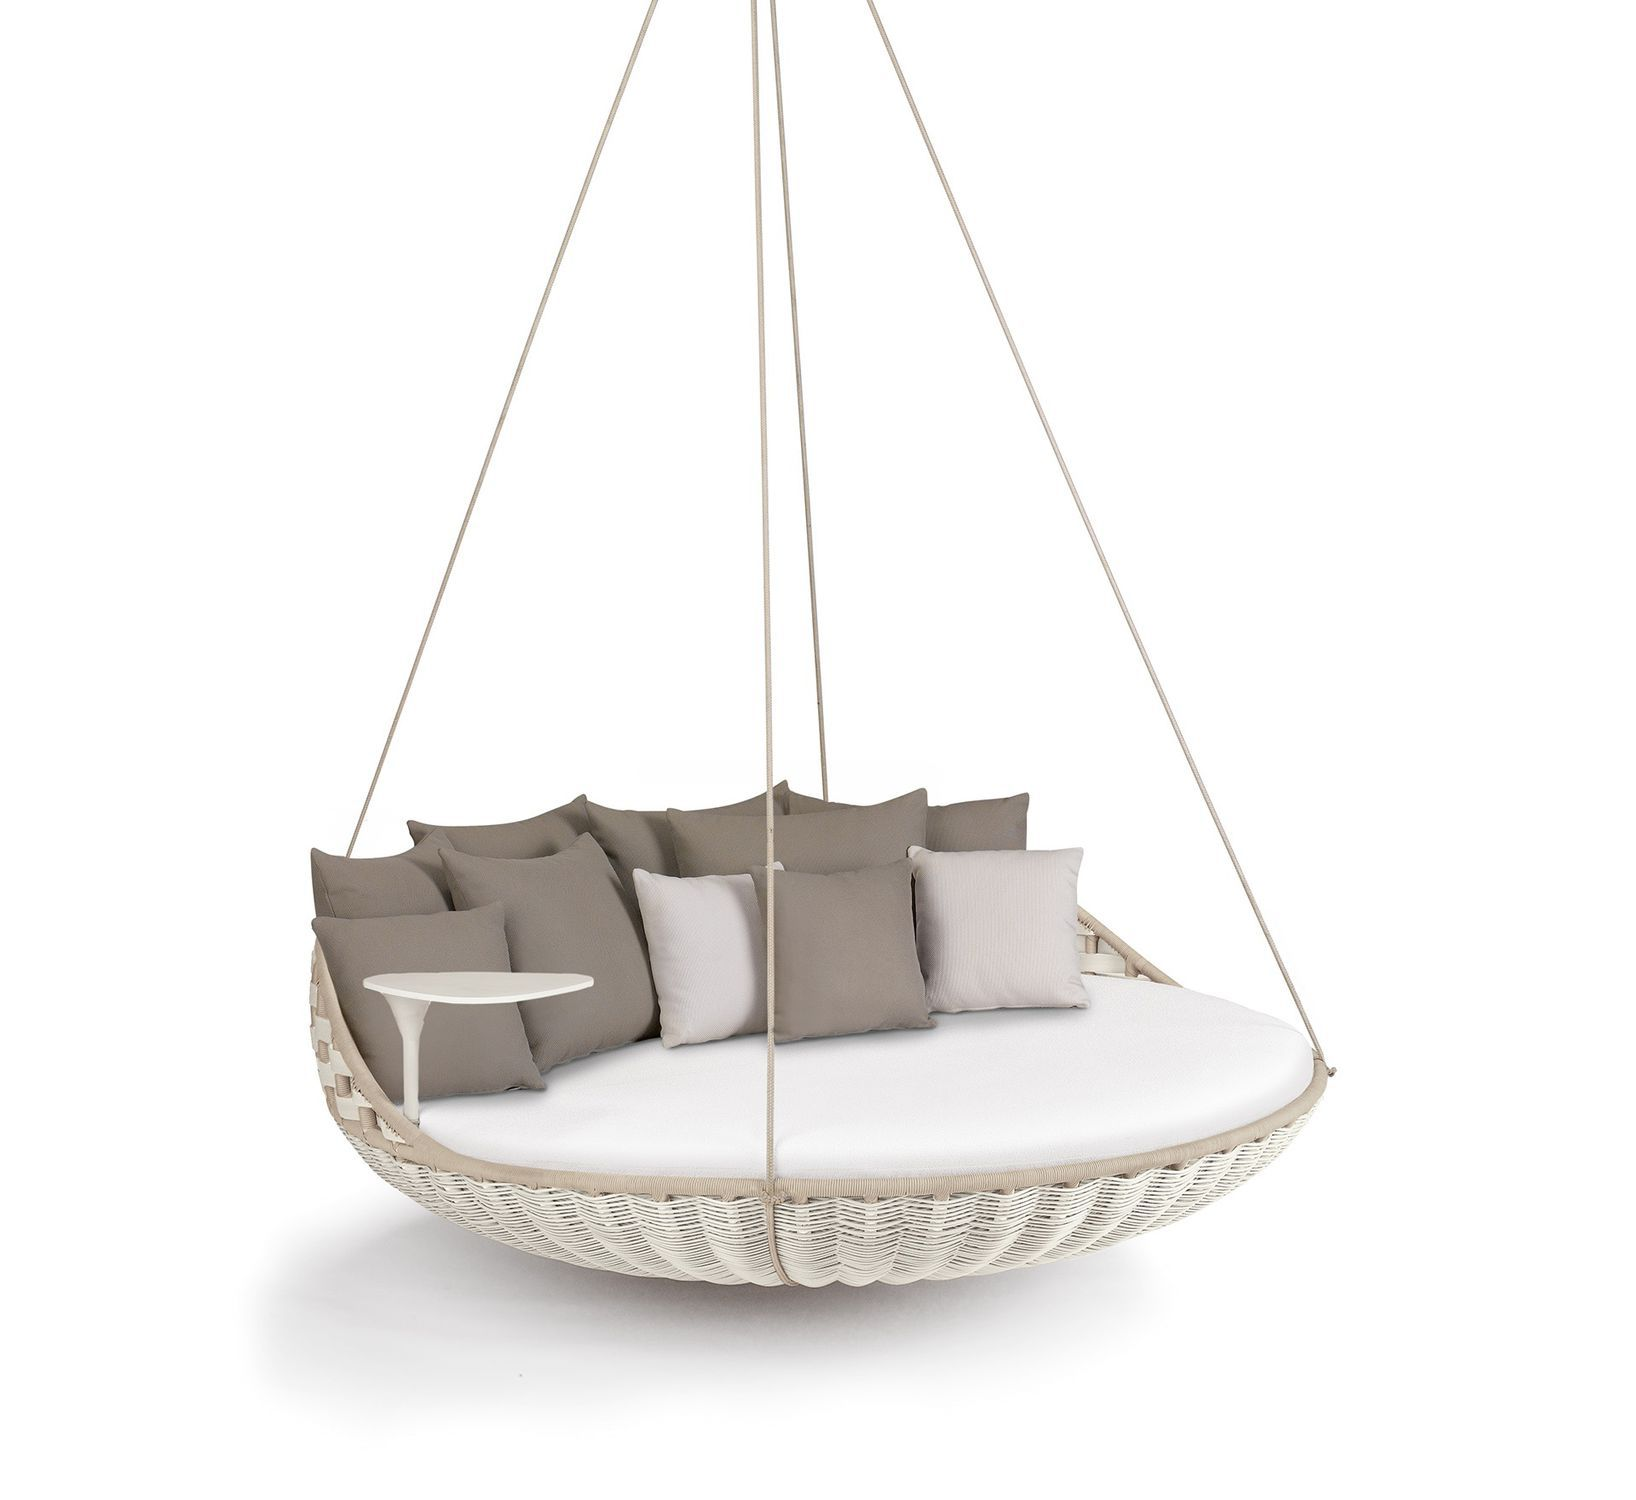 Wonderful ... Hanging Bed / Double / Contemporary / Resin Wicker SWINGREST By Daniel  Pouzet DEDON GmbH ... Ideas